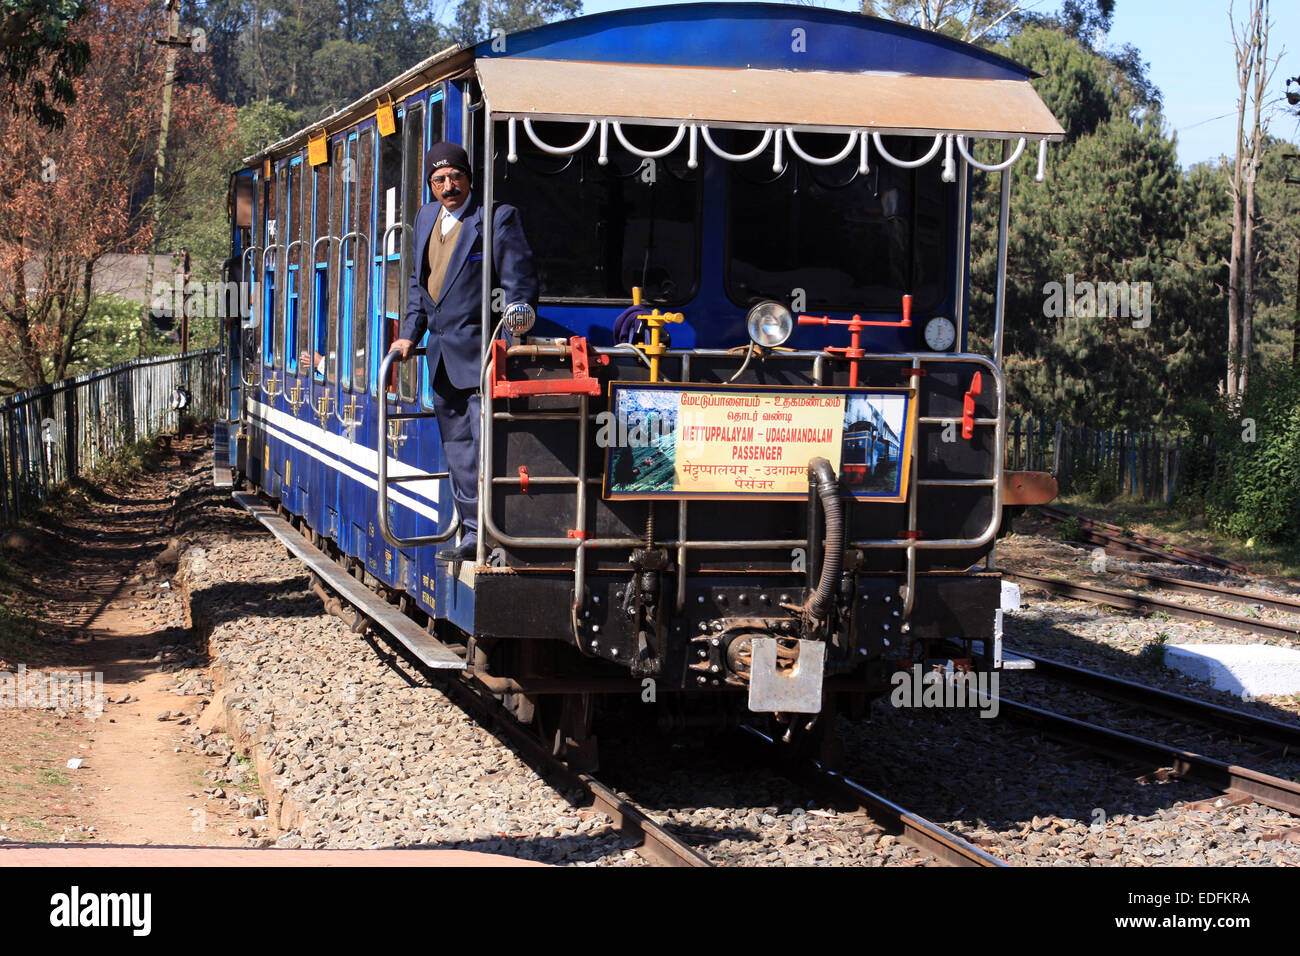 Ooty India Stock Photos Images Alamy Wiring Harness Meaning In Tamil Miniature Train Travelling From To Mettupalayam Nadu Image